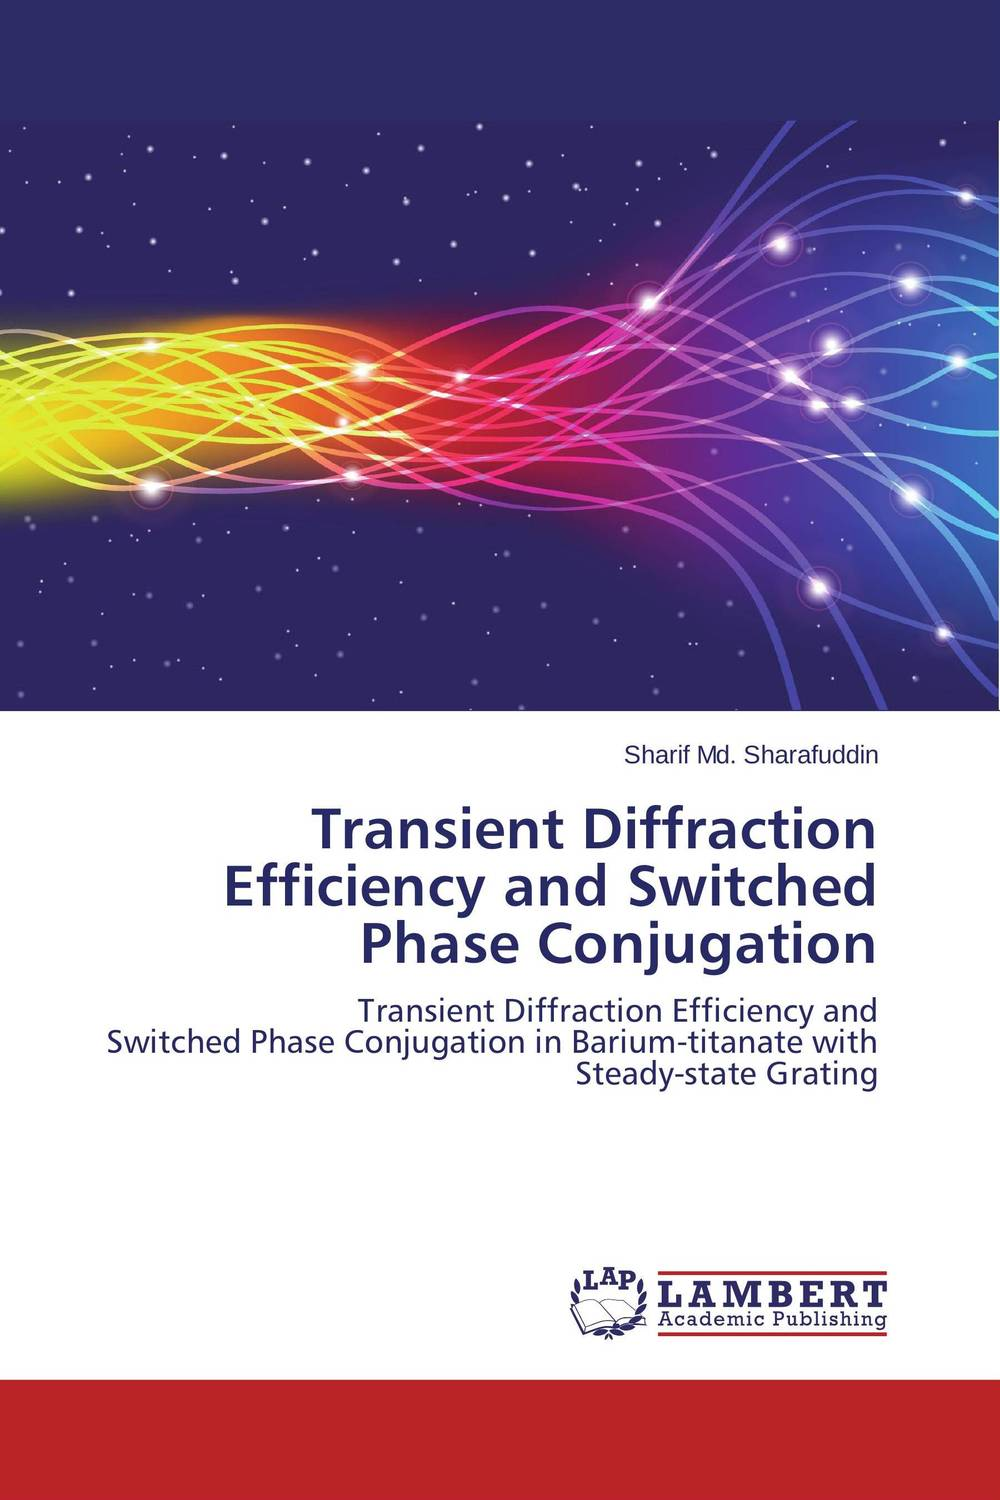 Transient Diffraction Efficiency and Switched Phase Conjugation